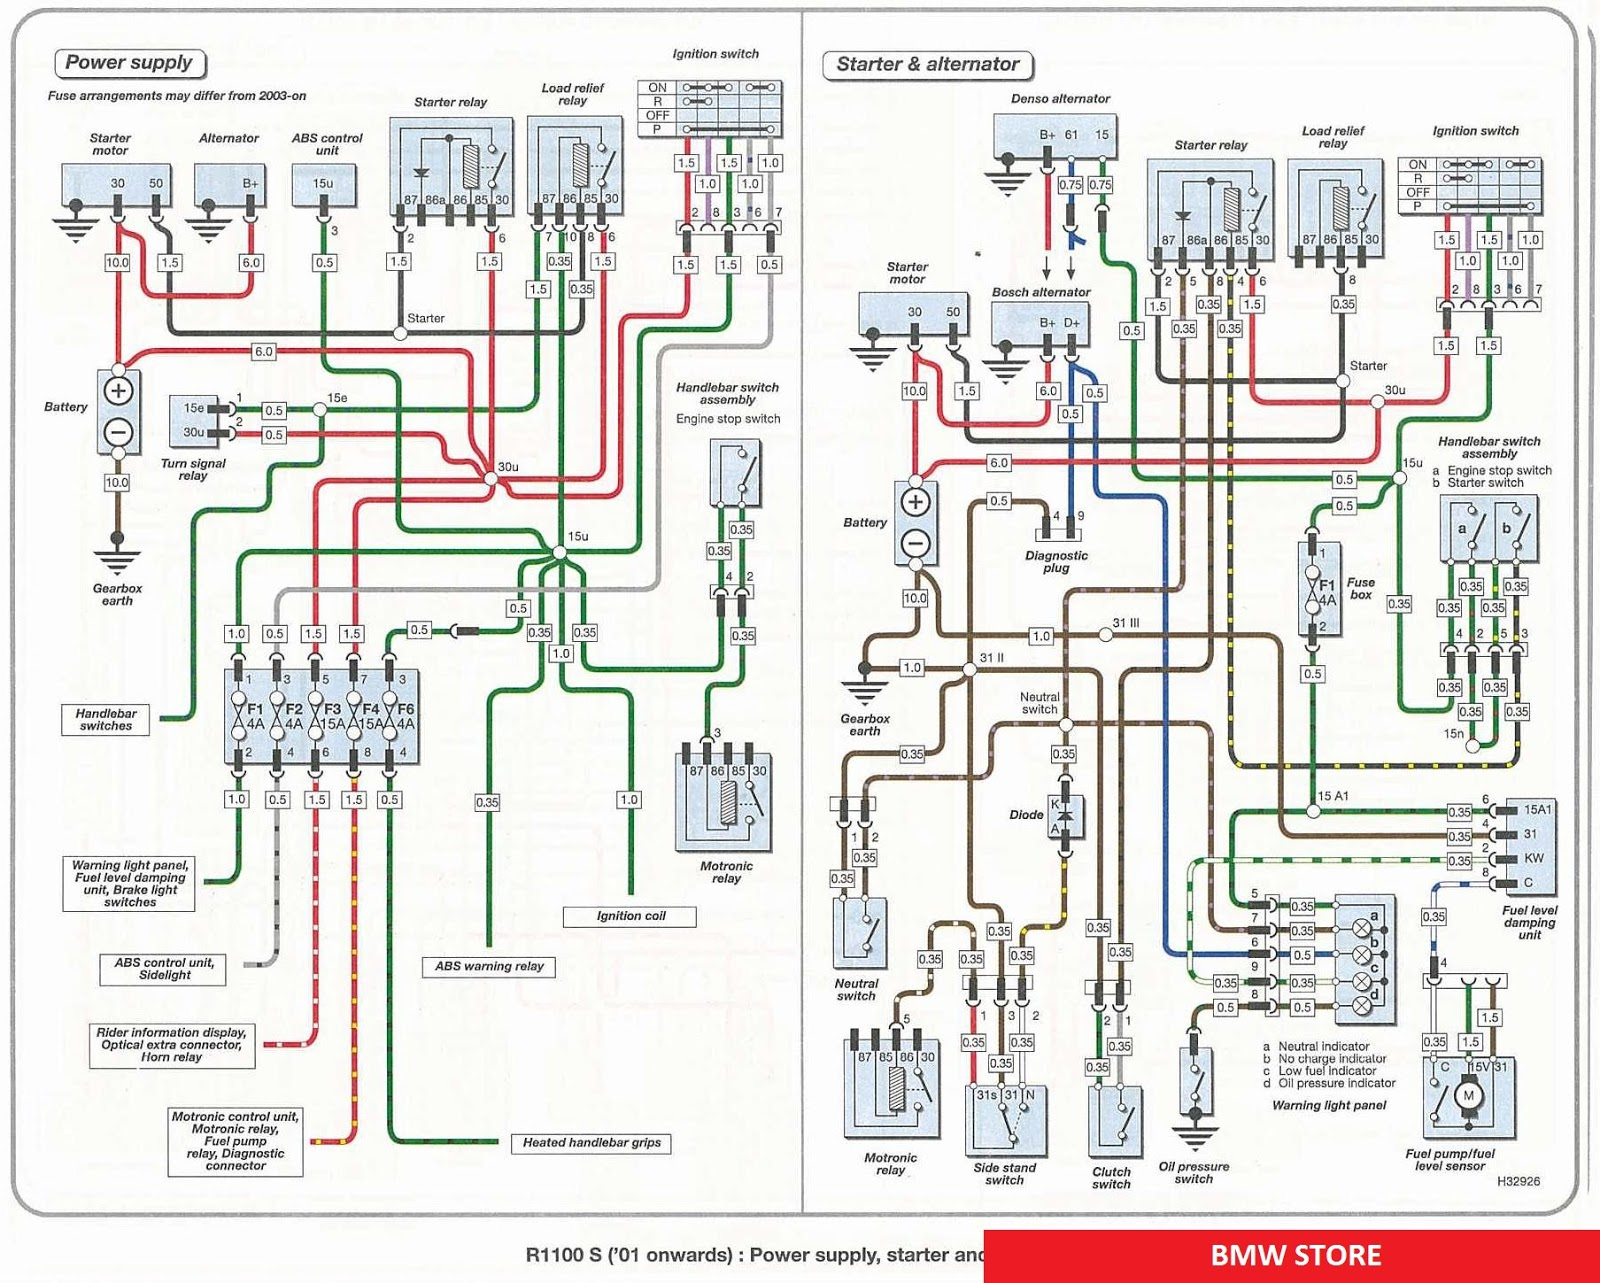 bmw-r1100s-aufkleber-33573234 R Rs Wiring Diagram on